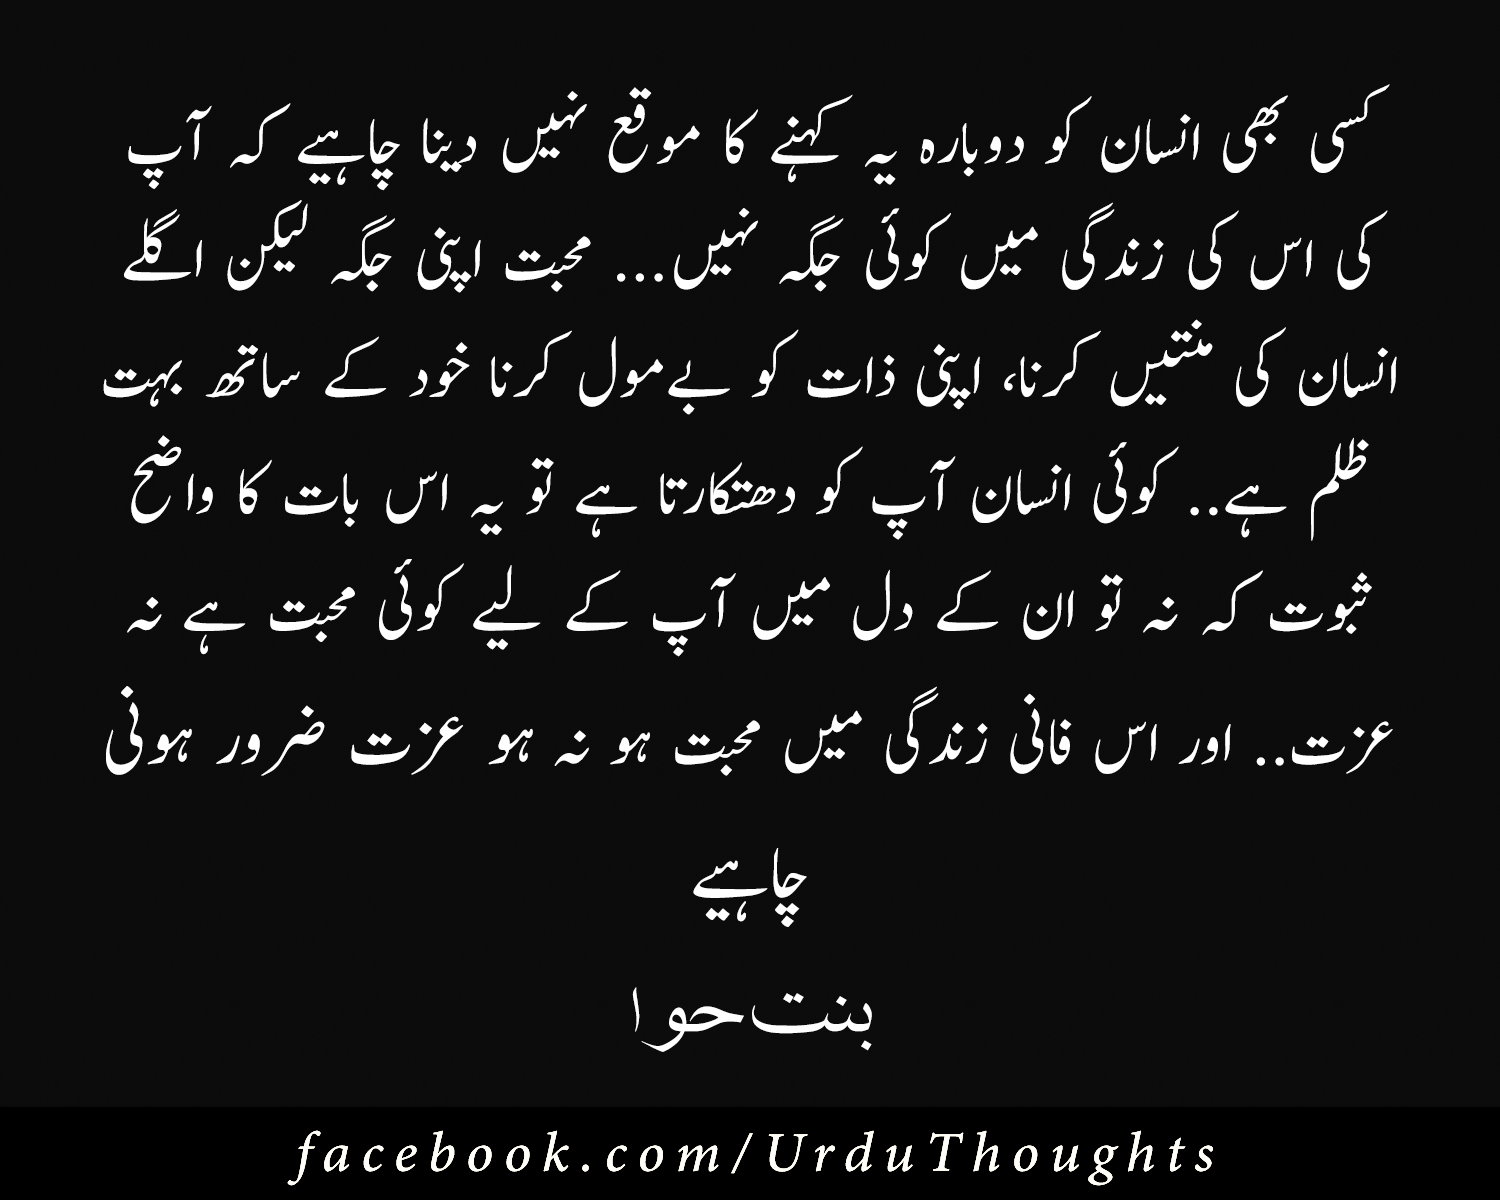 Quotes In Urdu Adorable Best Awesome Beautiful Quotes In Urdu With Pictures  Urdu Thoughts